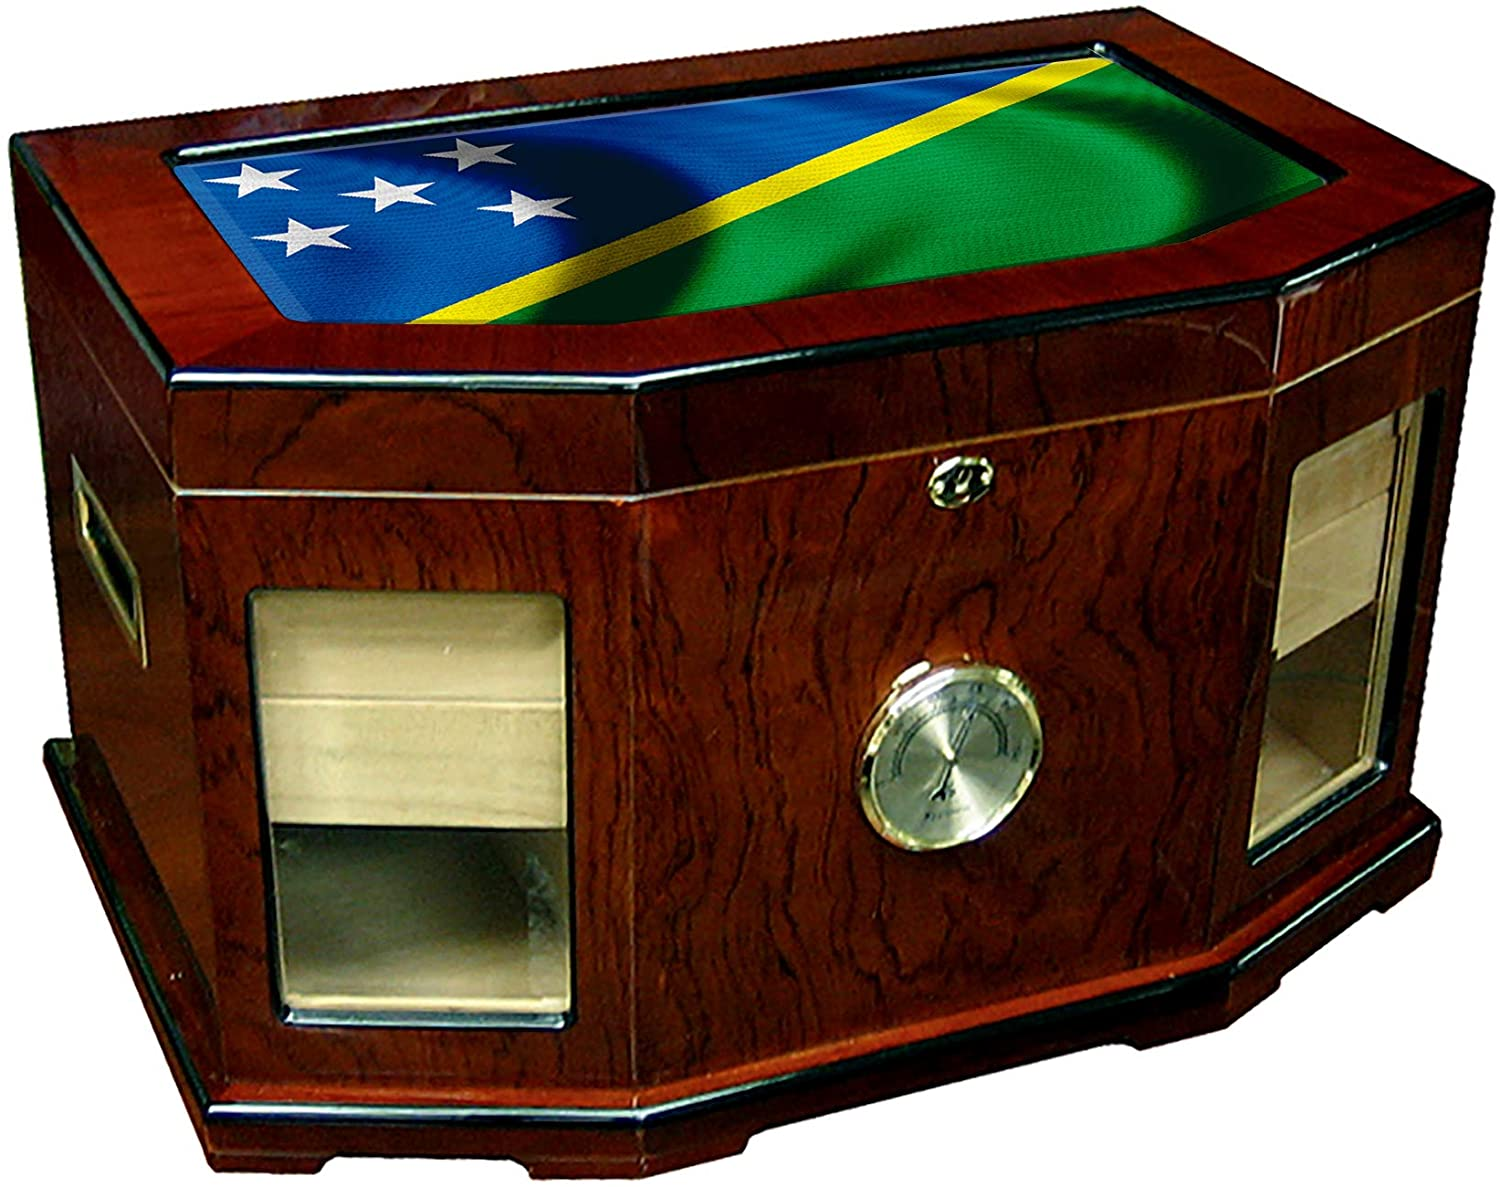 Large Premium Desktop Humidor - Glass Top - Flag of Solomon Islands (Islander) - Waves Design - 300 Cigar Capacity - Cedar Lined with Two humidifiers & Large Front Mounted Hygrometer.